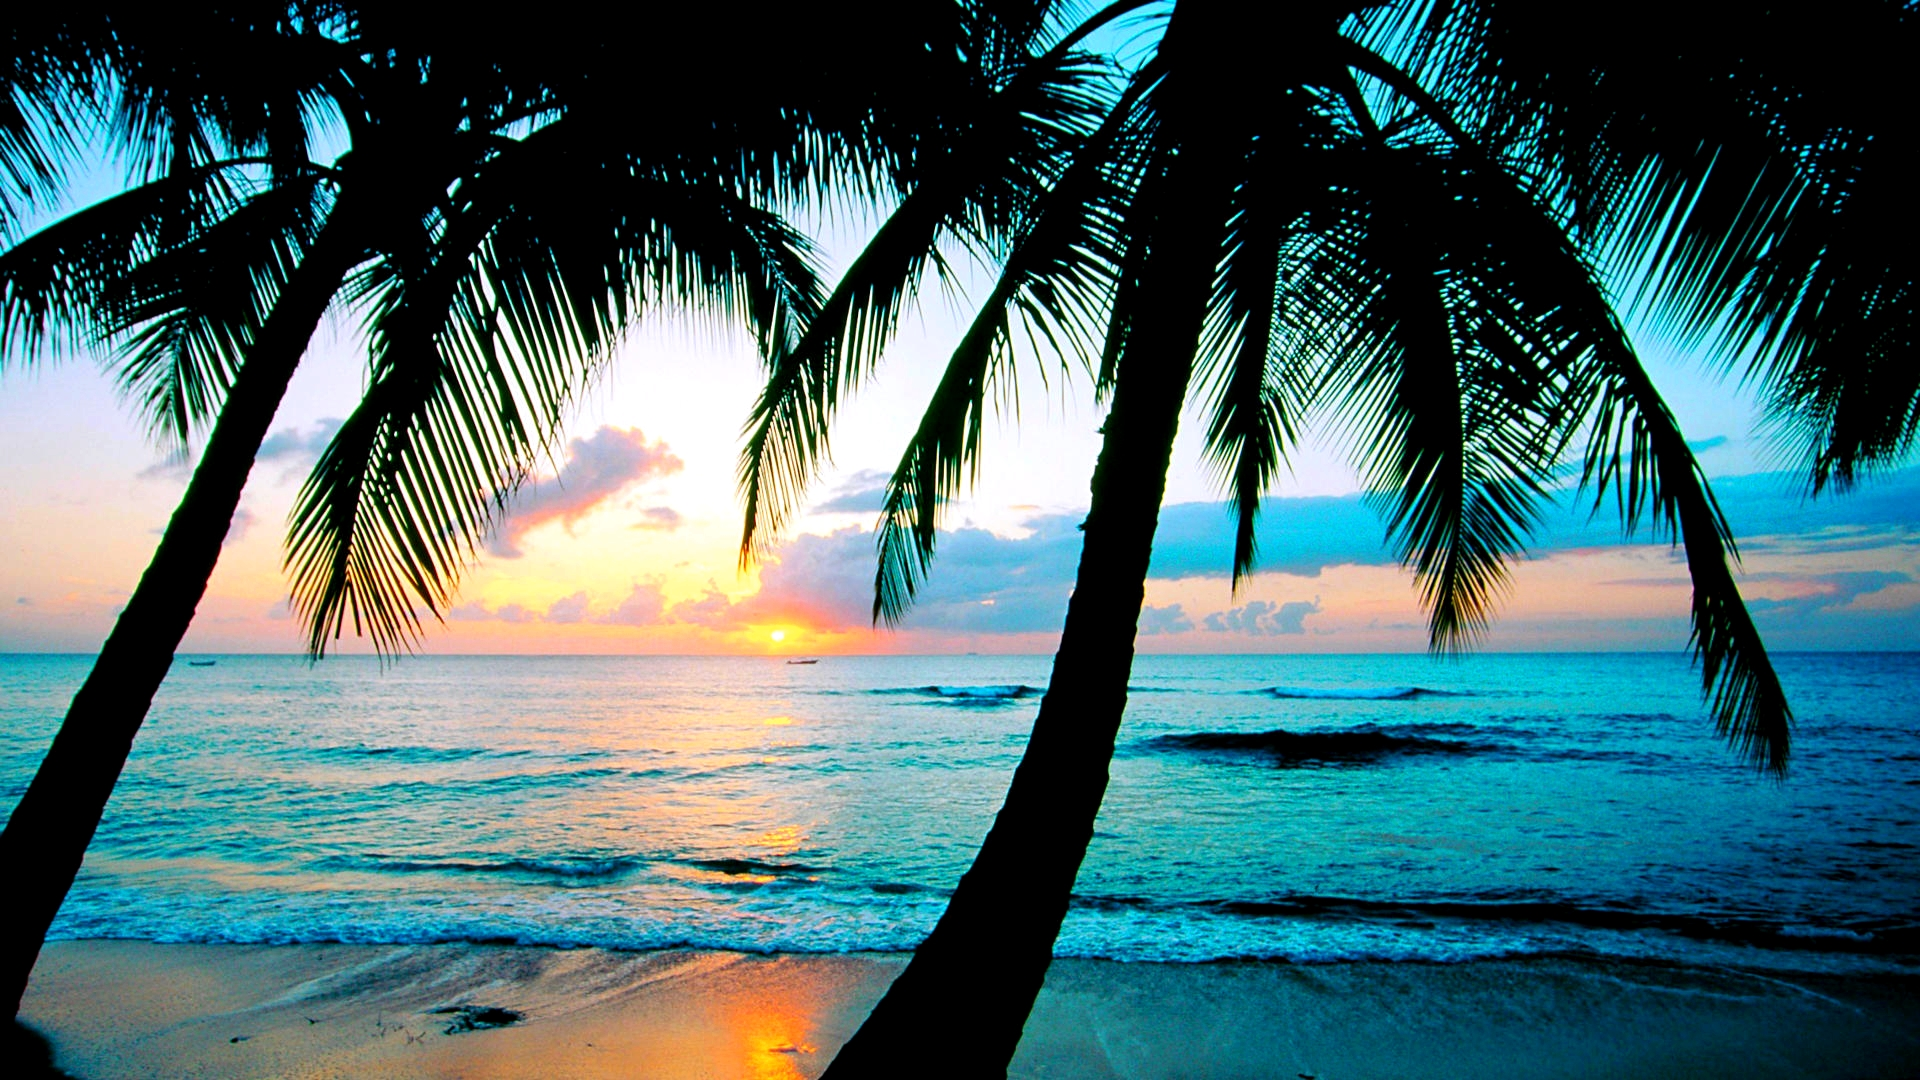 beach desktop wallpapers download Desktop Backgrounds for HD 1920x1080